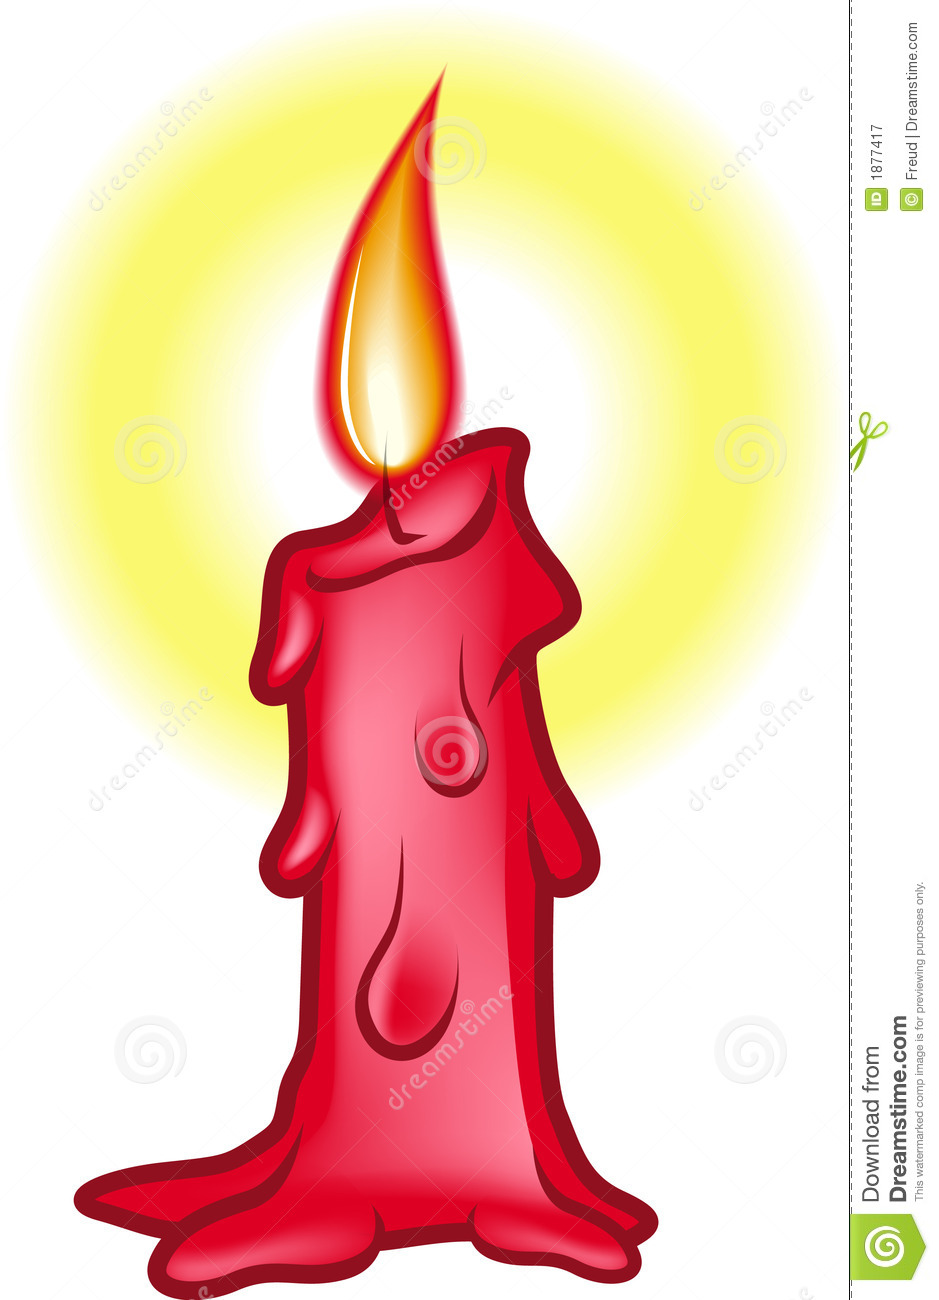 candle clipart single